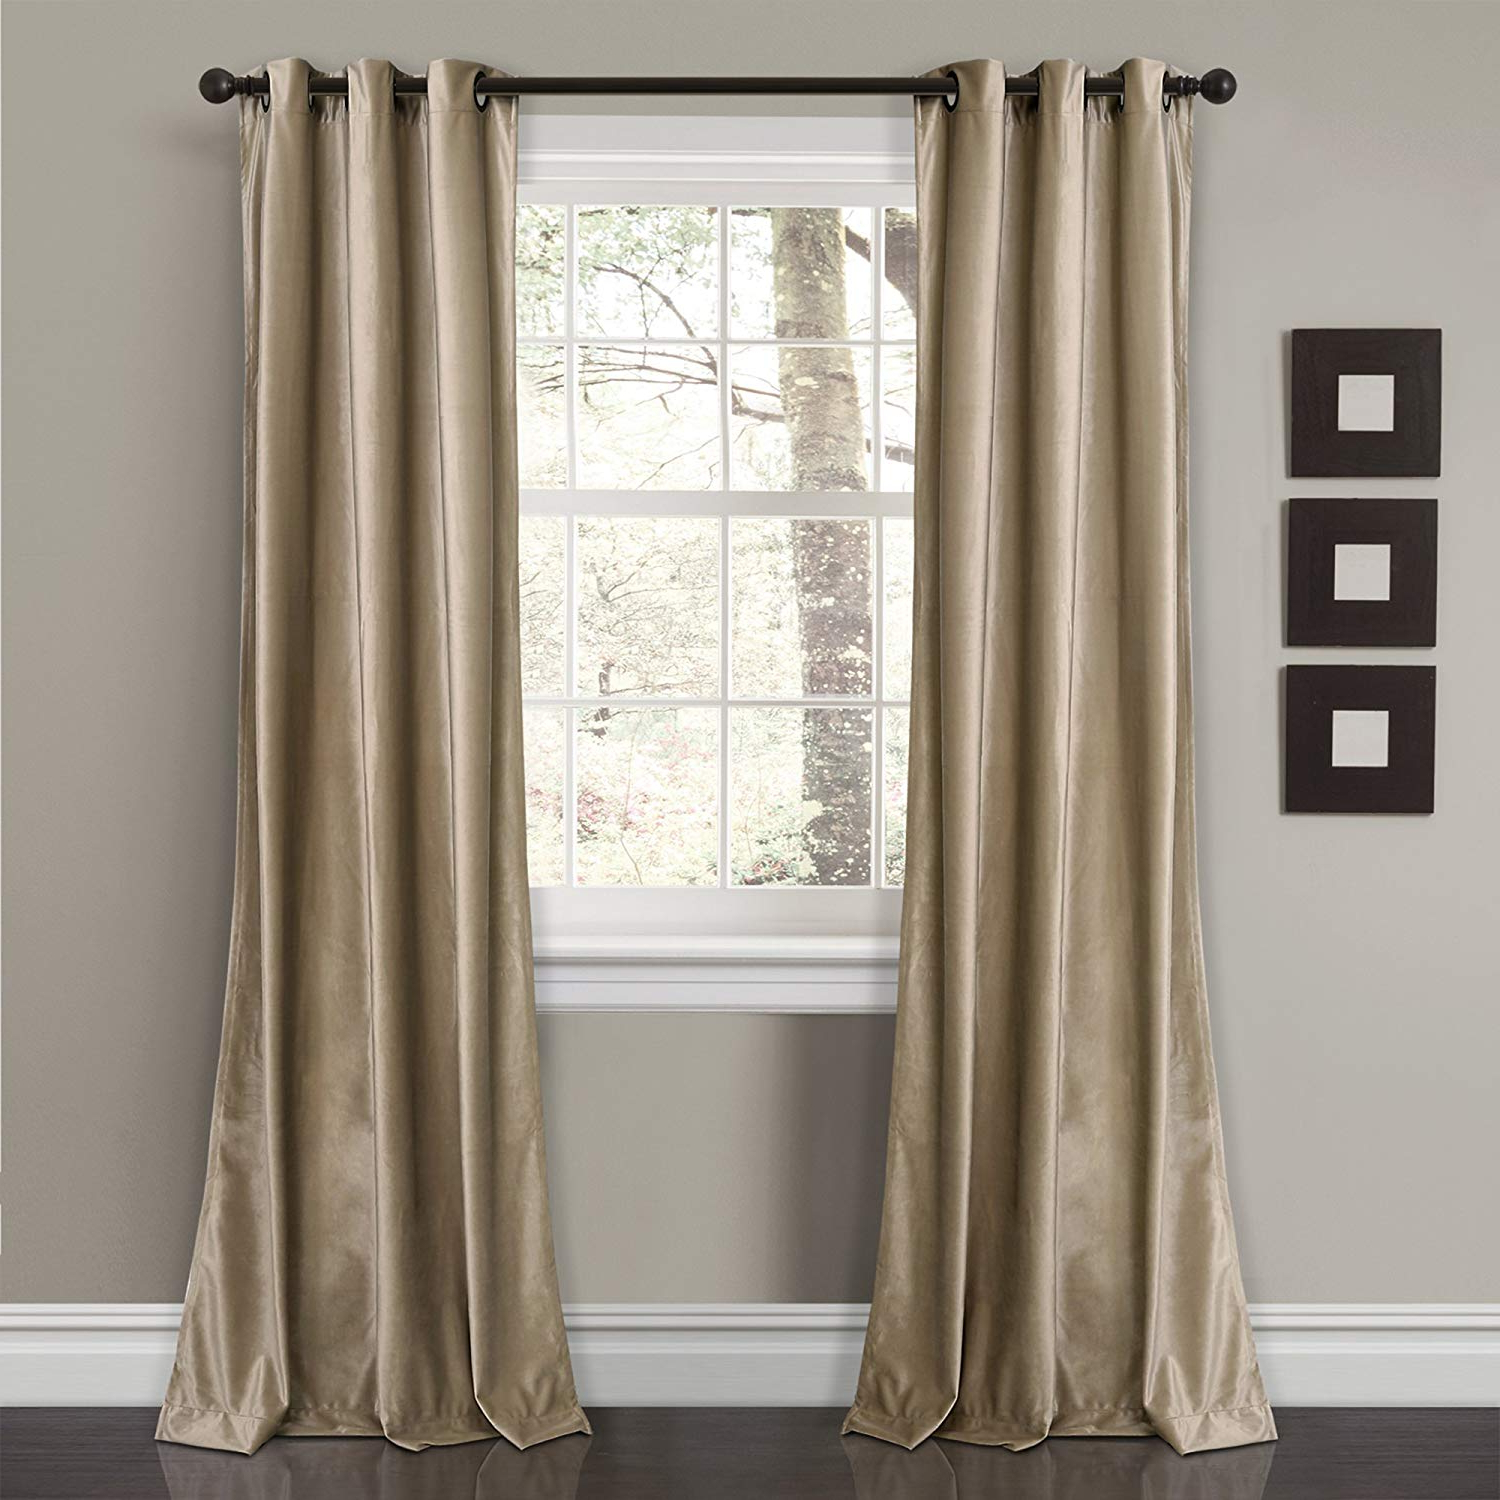 """Most Recent Lush Decor Prima Velvet Curtains Solid Color Room Darkening Window Panel Set For Living, Dining, Bedroom (pair), 84"""" L, Taupe With Regard To Velvet Solid Room Darkening Window Curtain Panel Sets (View 3 of 20)"""